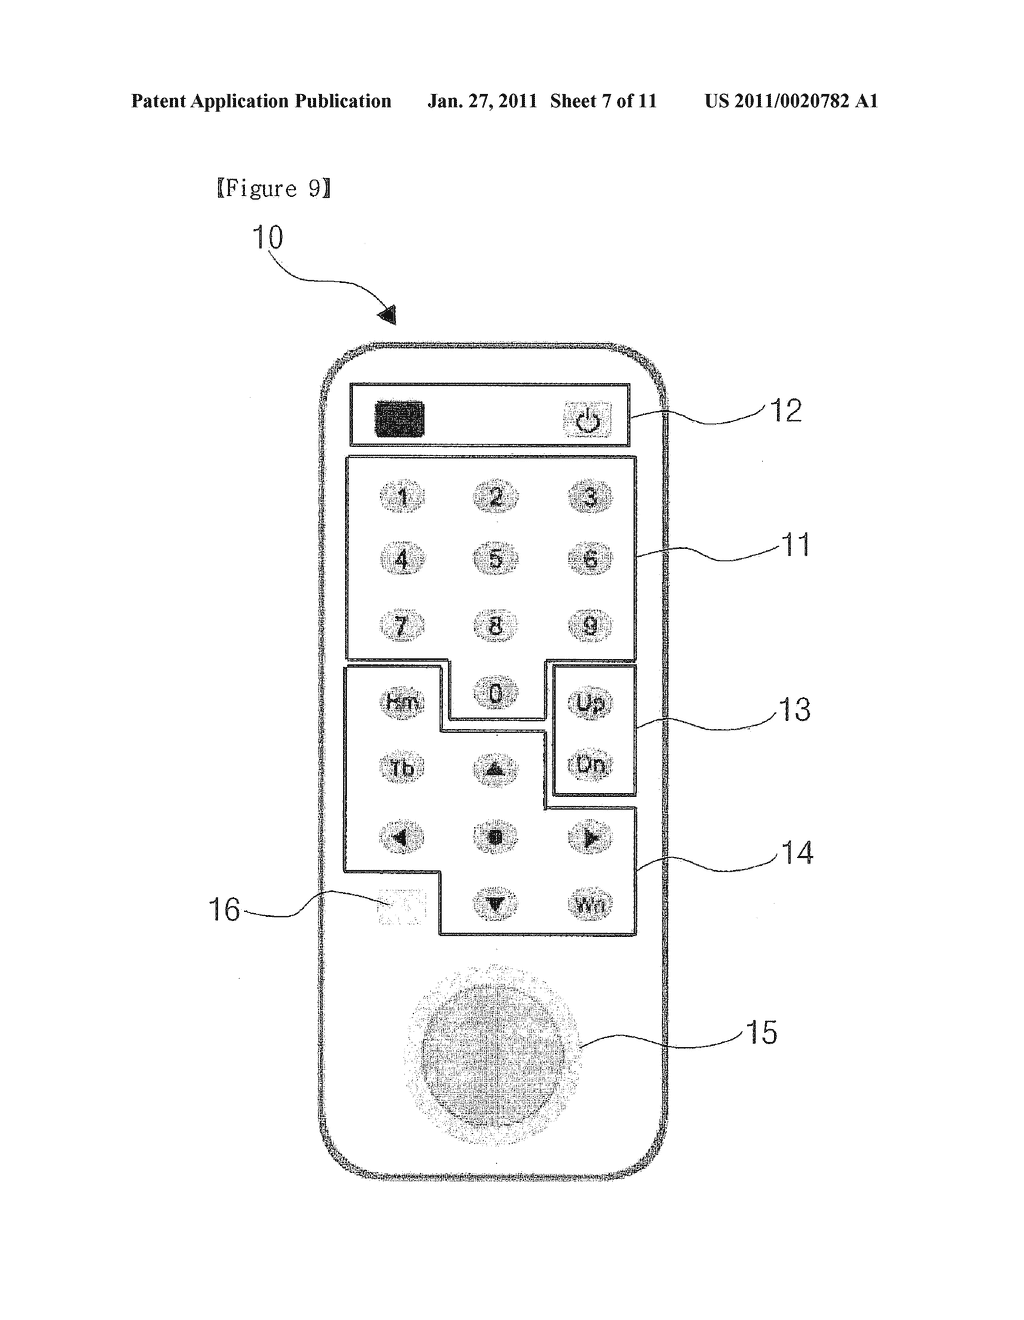 METHOD OF CONTROLLING COMPUTER PROGRAM AND SEARCHING FOLD AND FILE USING OBJECT-ORIENTED BUTTON, CONTROL AND PRESENTATION SYSTEM USING THE SAME AND REMOTE CONTROLLER USING THE SAME - diagram, schematic, and image 08